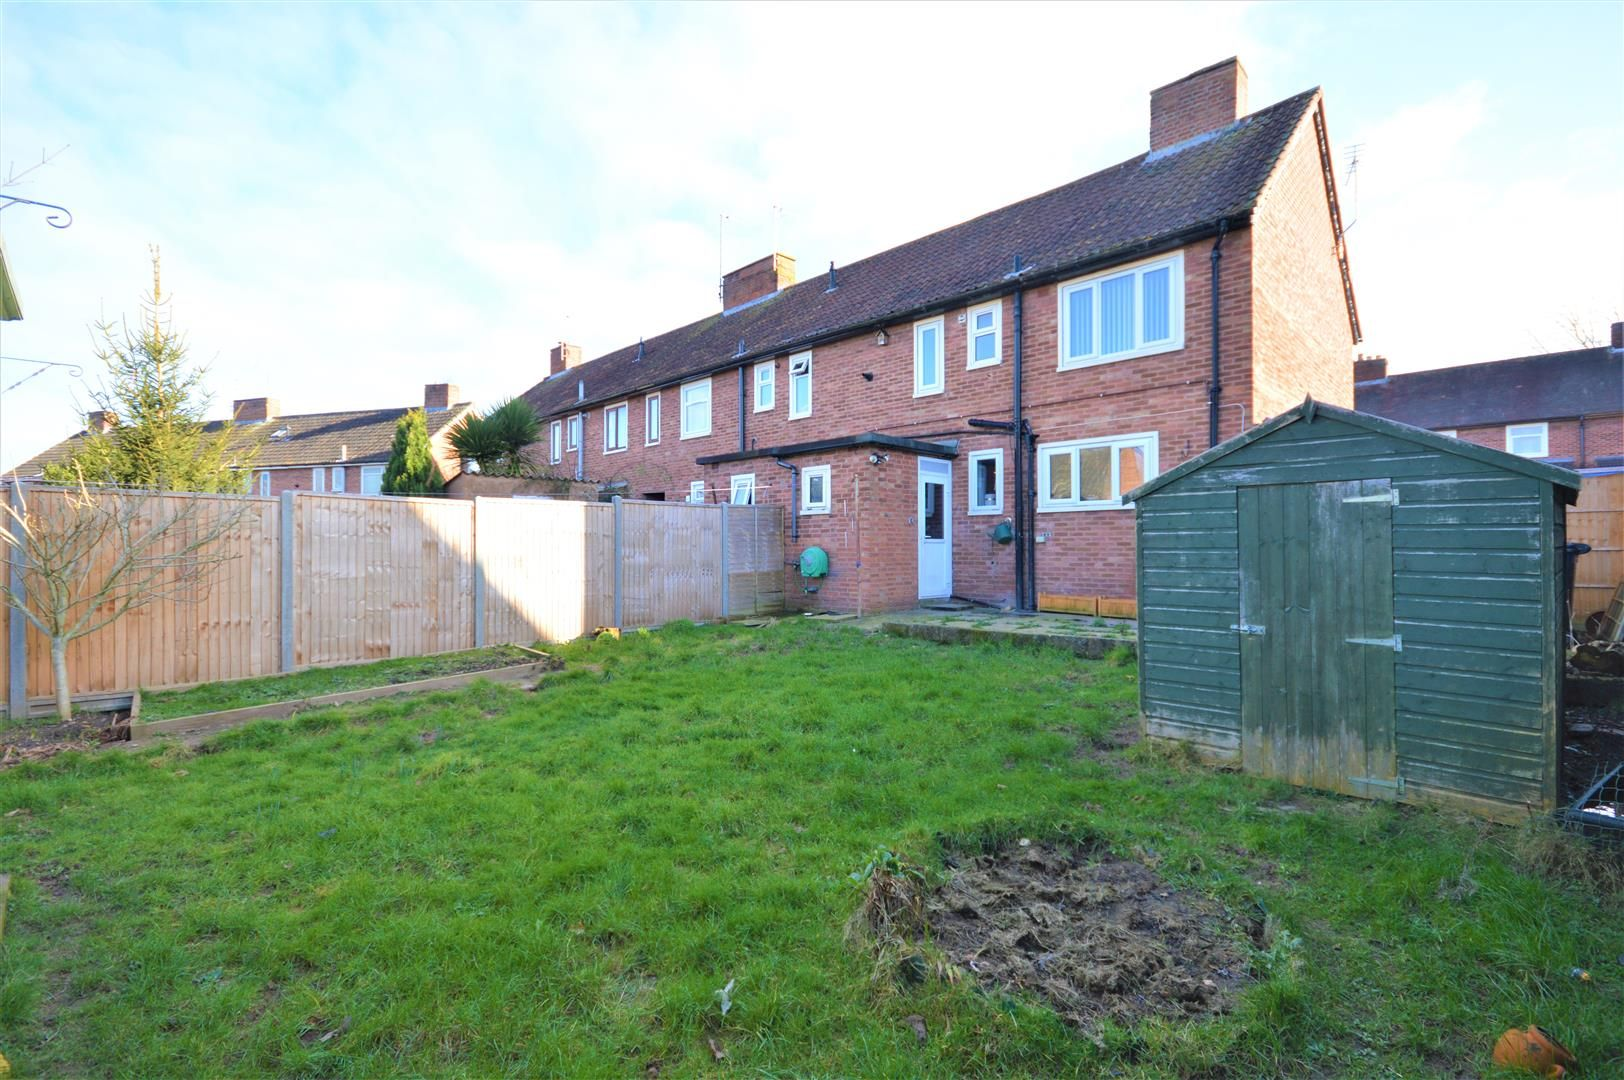 3 bed end-of-terrace for sale in Hereford  - Property Image 13